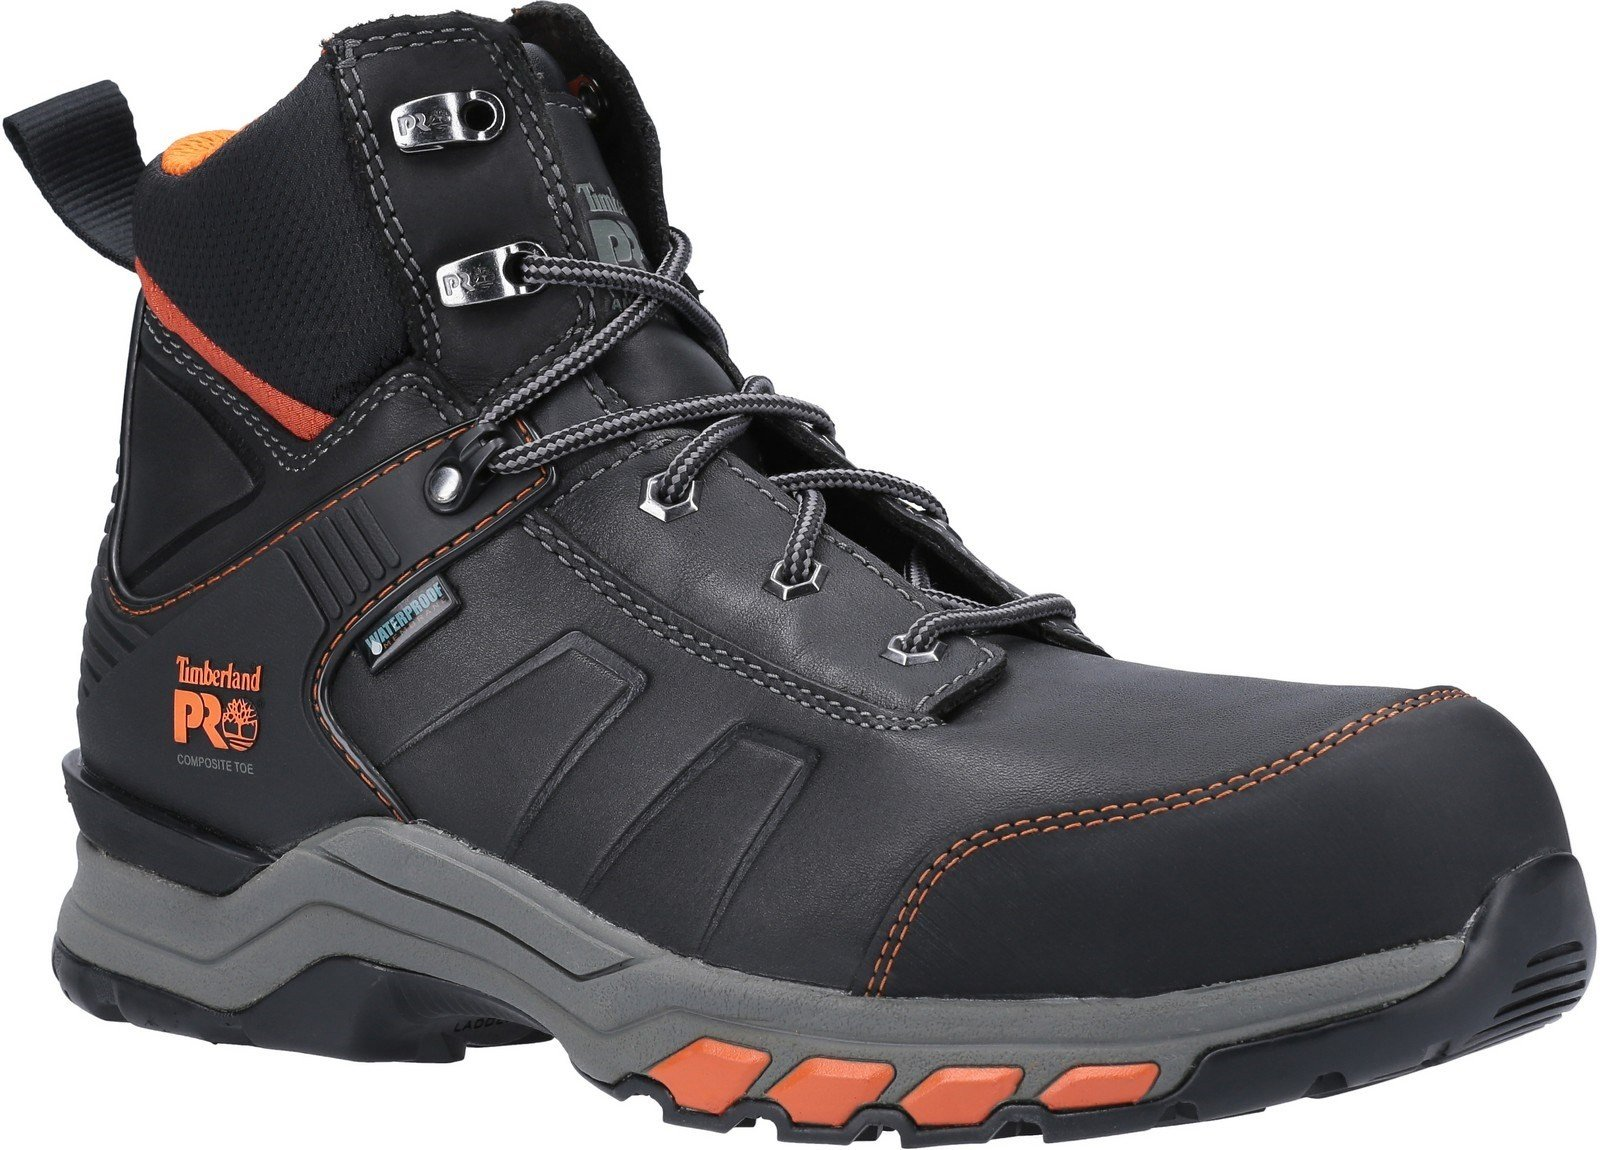 Timberland Pro Men's Hypercharge Safety Toe Work Boot Various Colours 30948 - Black/Orange 6